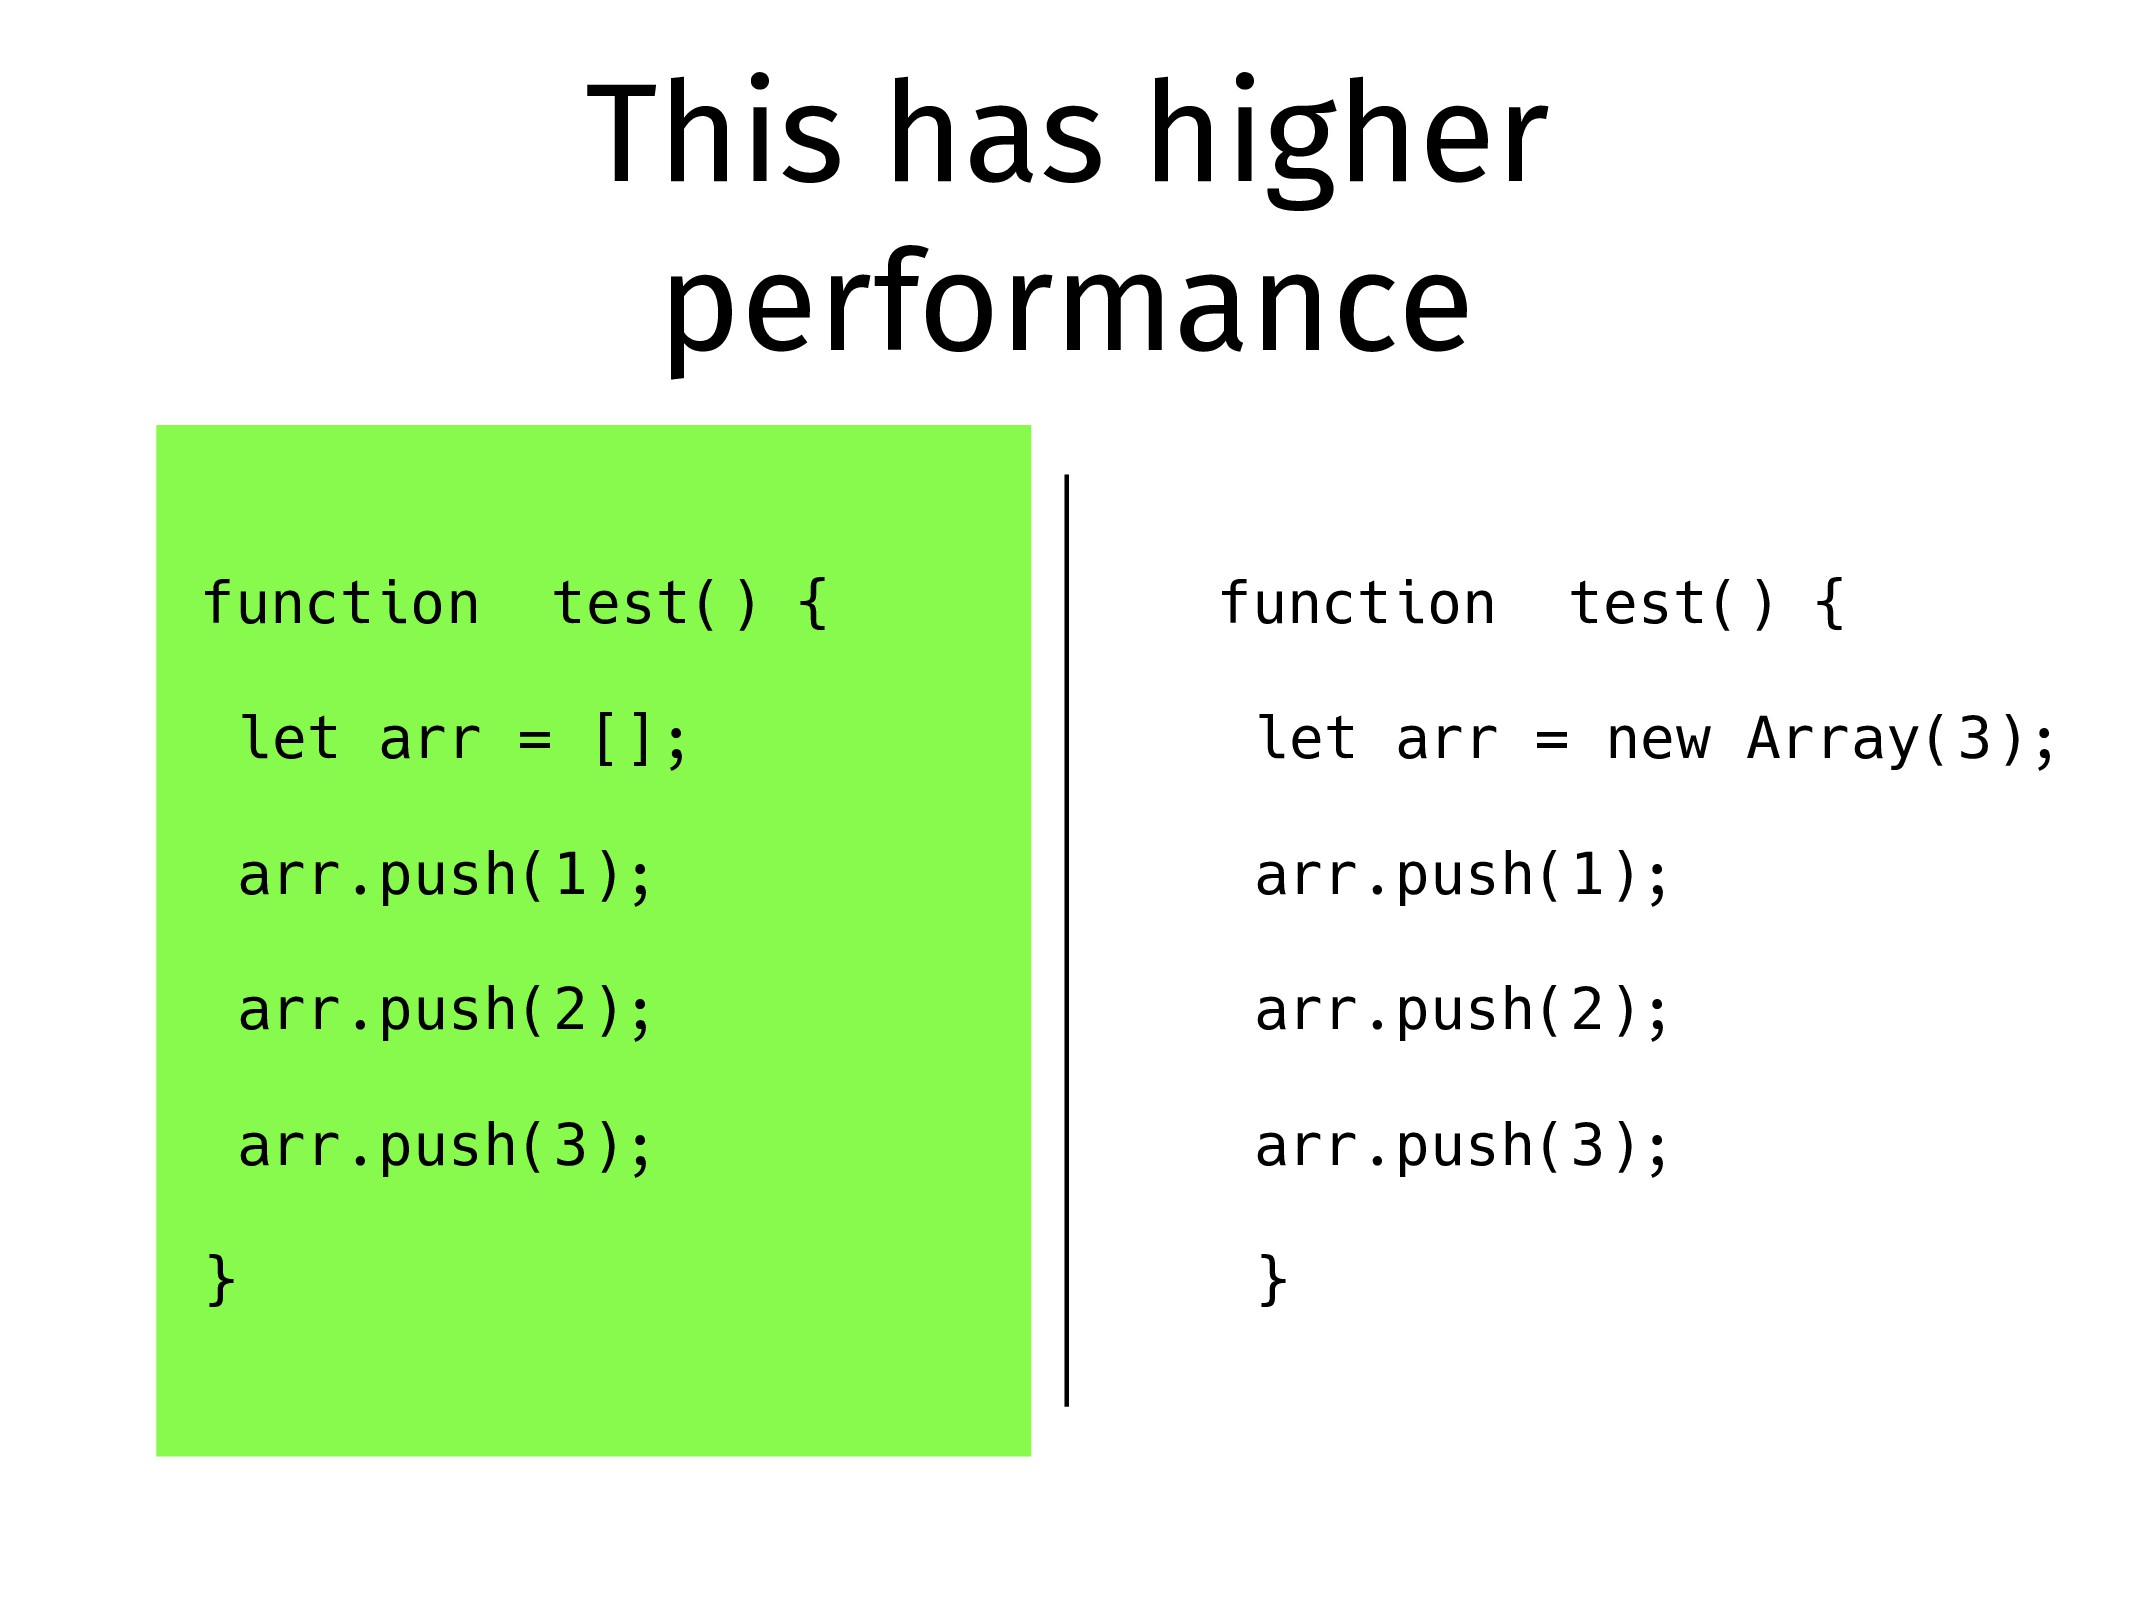 This has higher performance function test() { l...